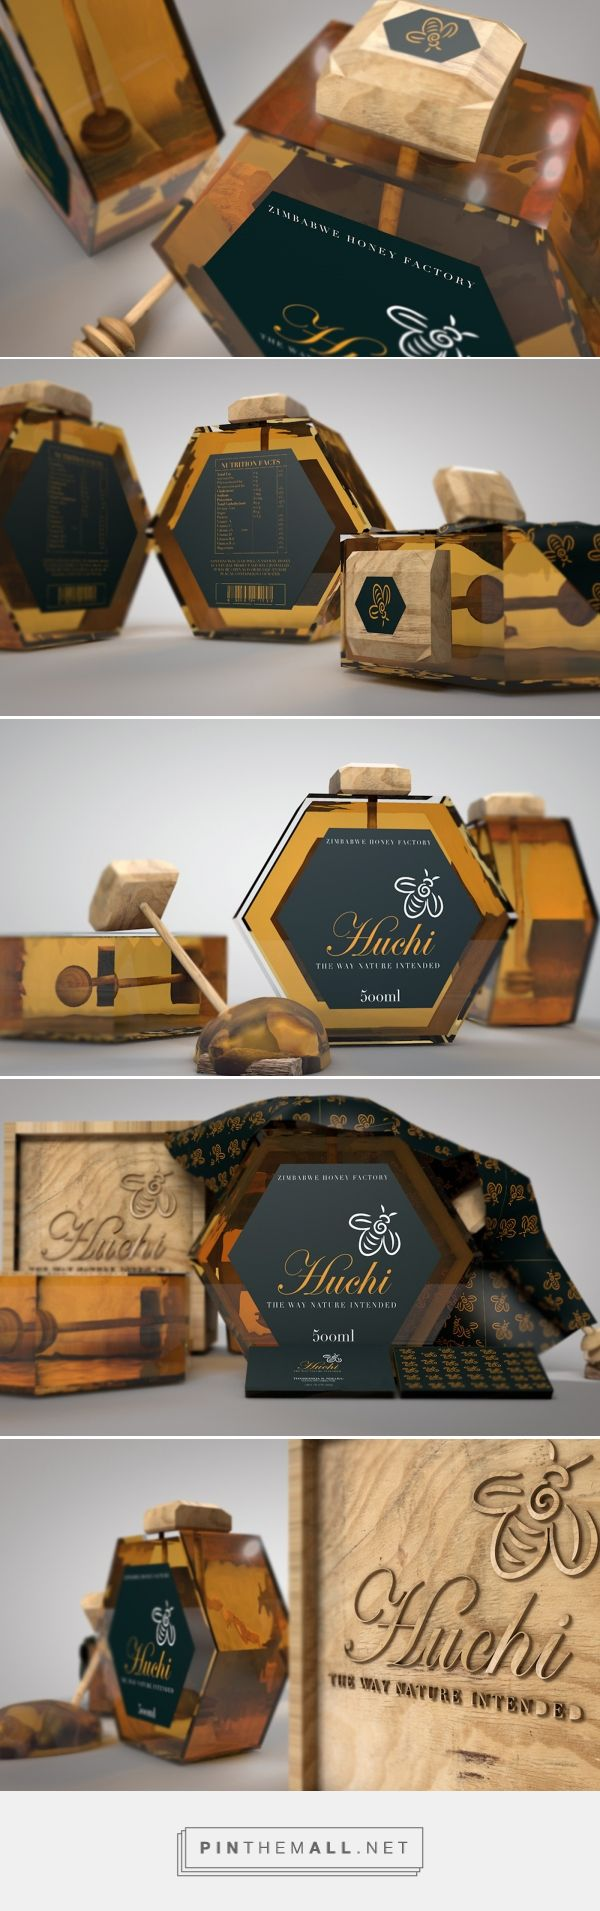 Huchi (honey) product design on Behance by Thamsanqa Nigel Ndlovu, Dubai, United Arab Emirates curated by Packaging Diva PD. Concept jars are an intended brand image packaging for the honey product for Zimbabwe Market. Huchi is a Zimbabwean name for honey.